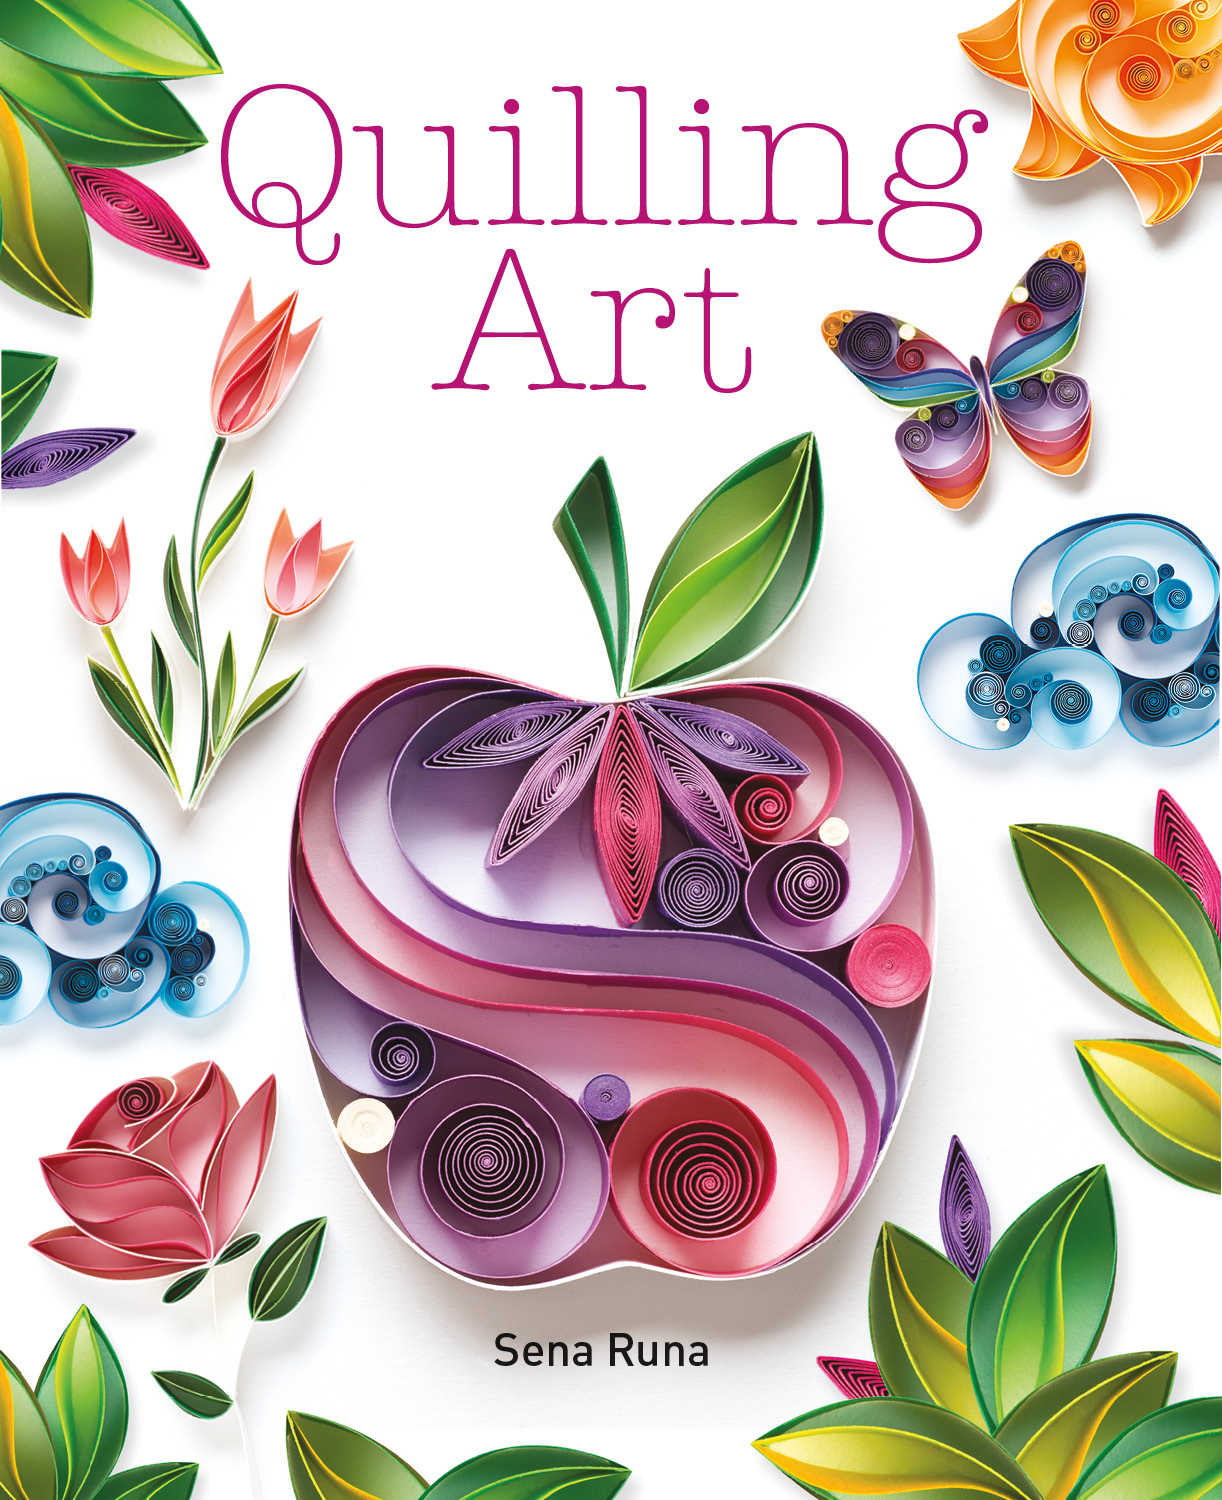 Quilling Art by Sena Runa